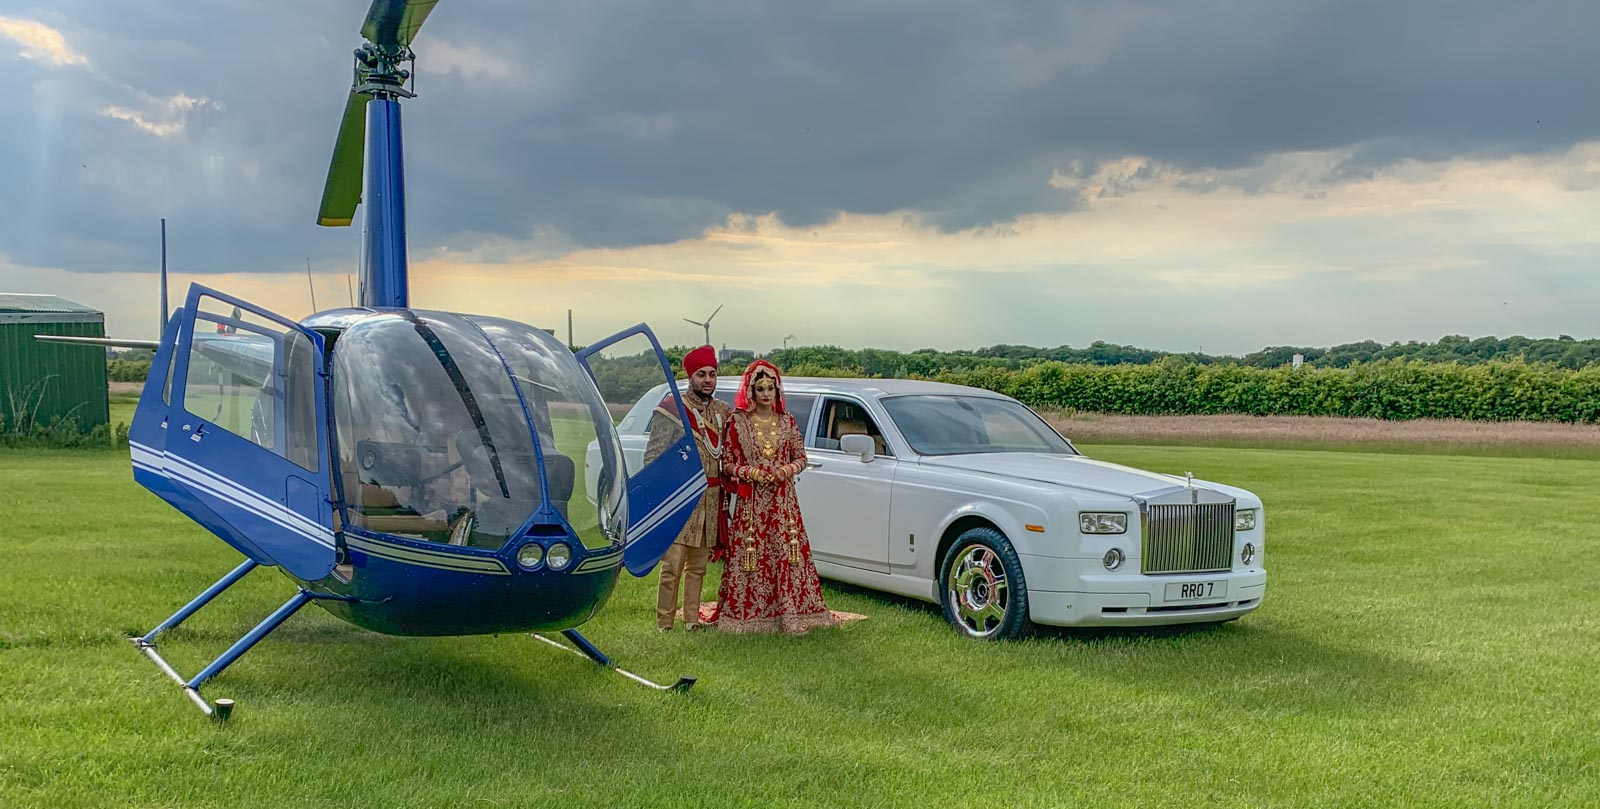 Heli-Weddings